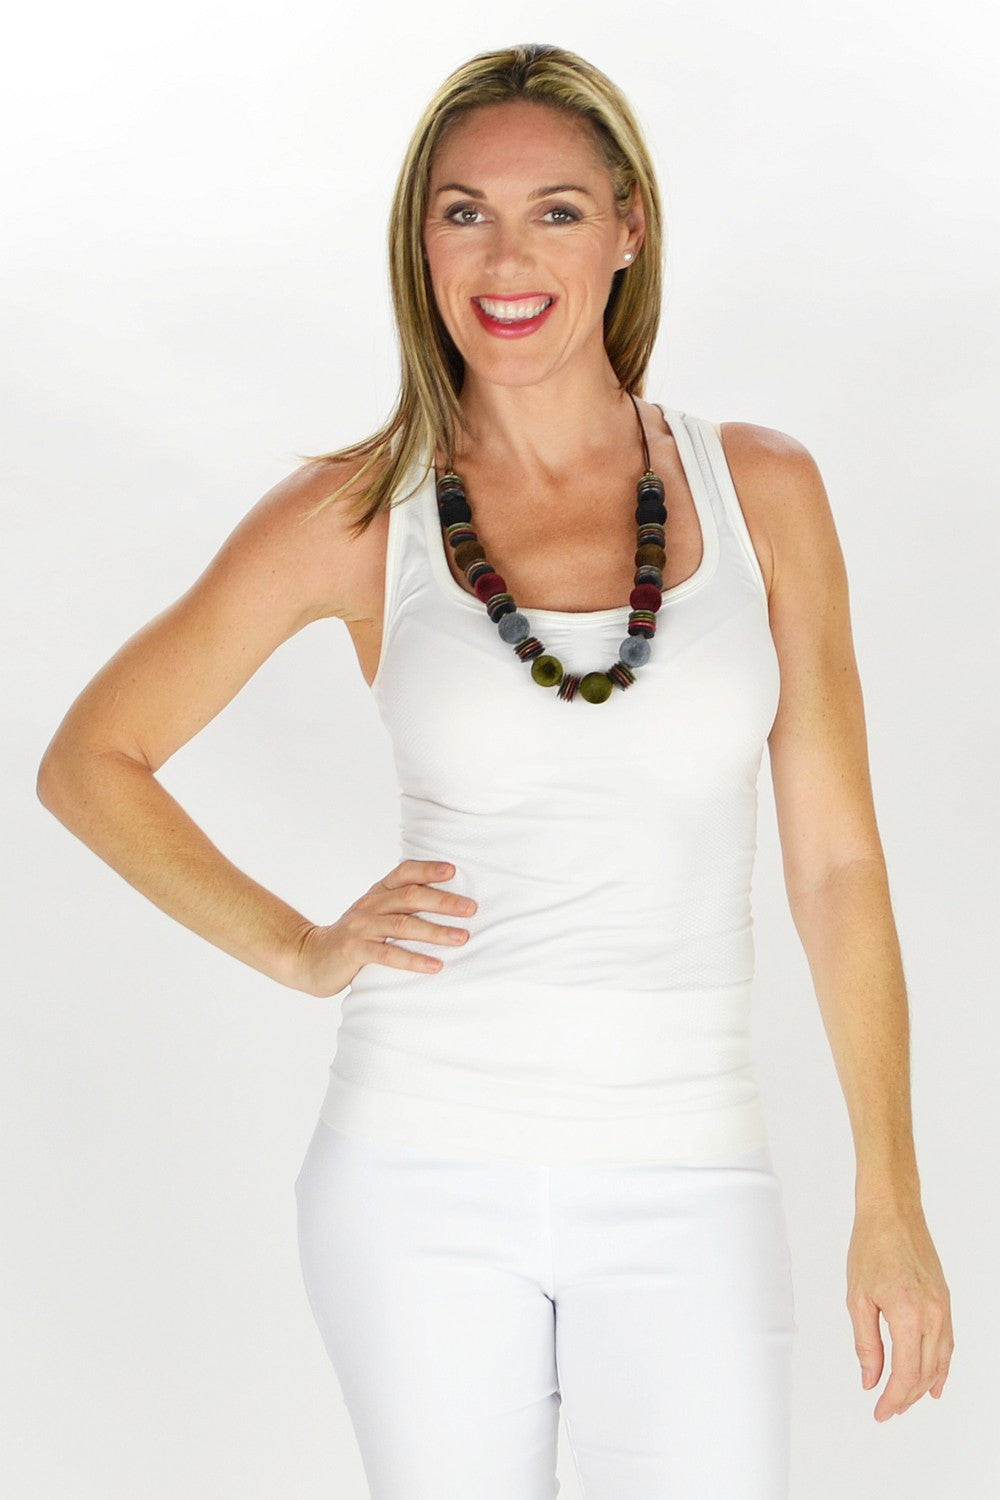 Disks & Velvet Balls Necklace - at I Love Tunics @ www.ilovetunics.com = Number One! Tunics Destination